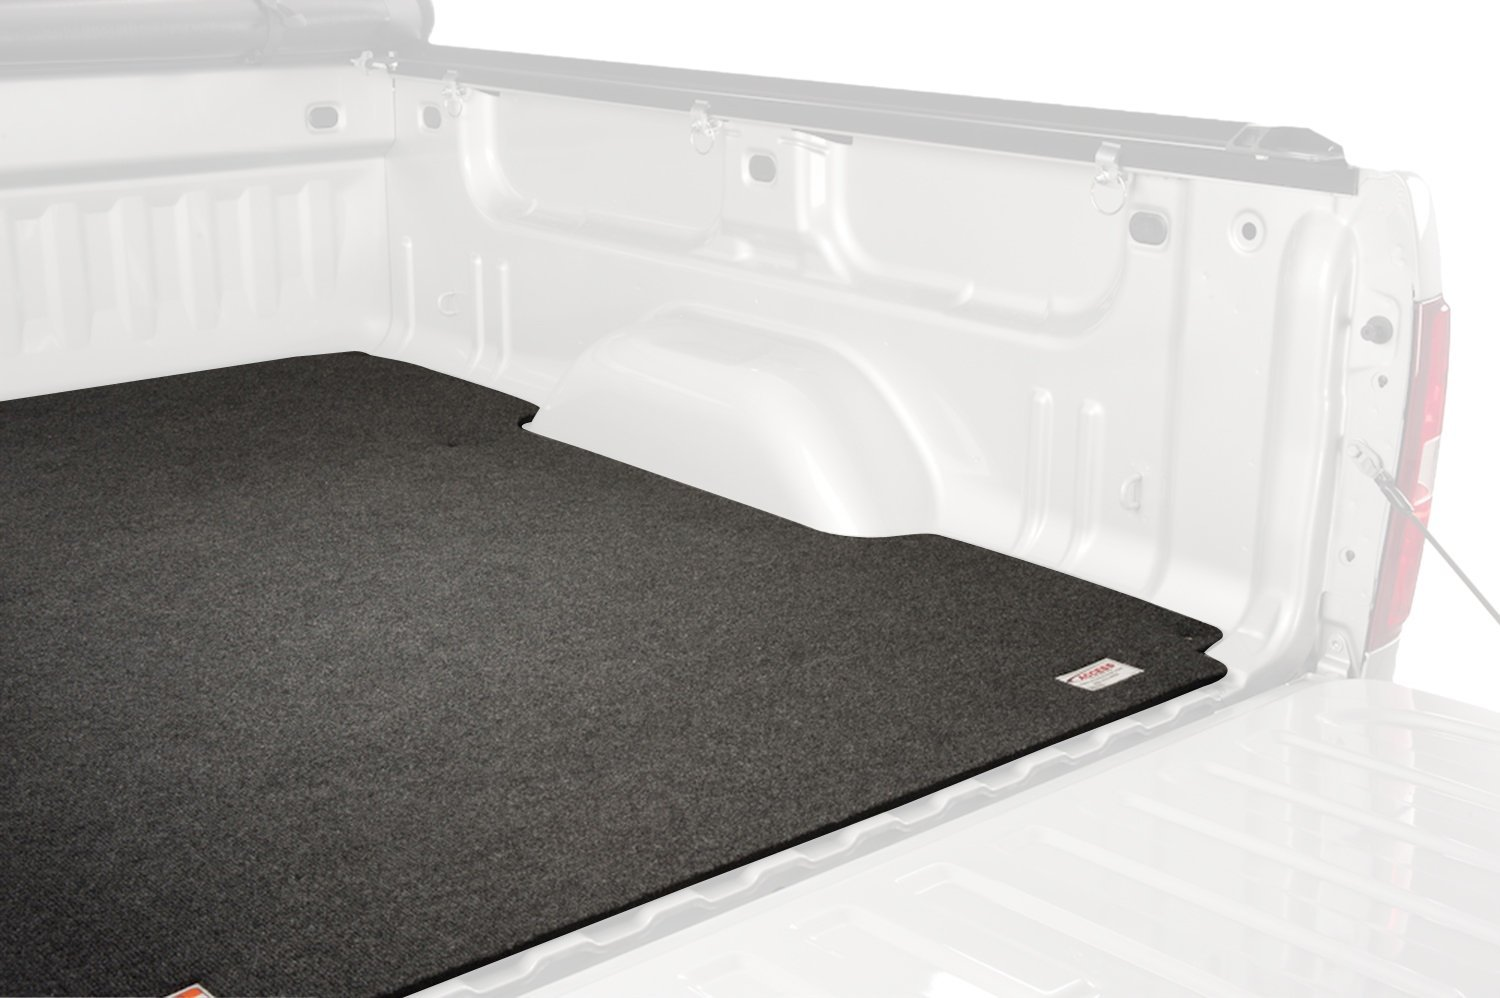 25010379 ACI/ AgriCover/ Access Cover Bed Mat Direct-Fit